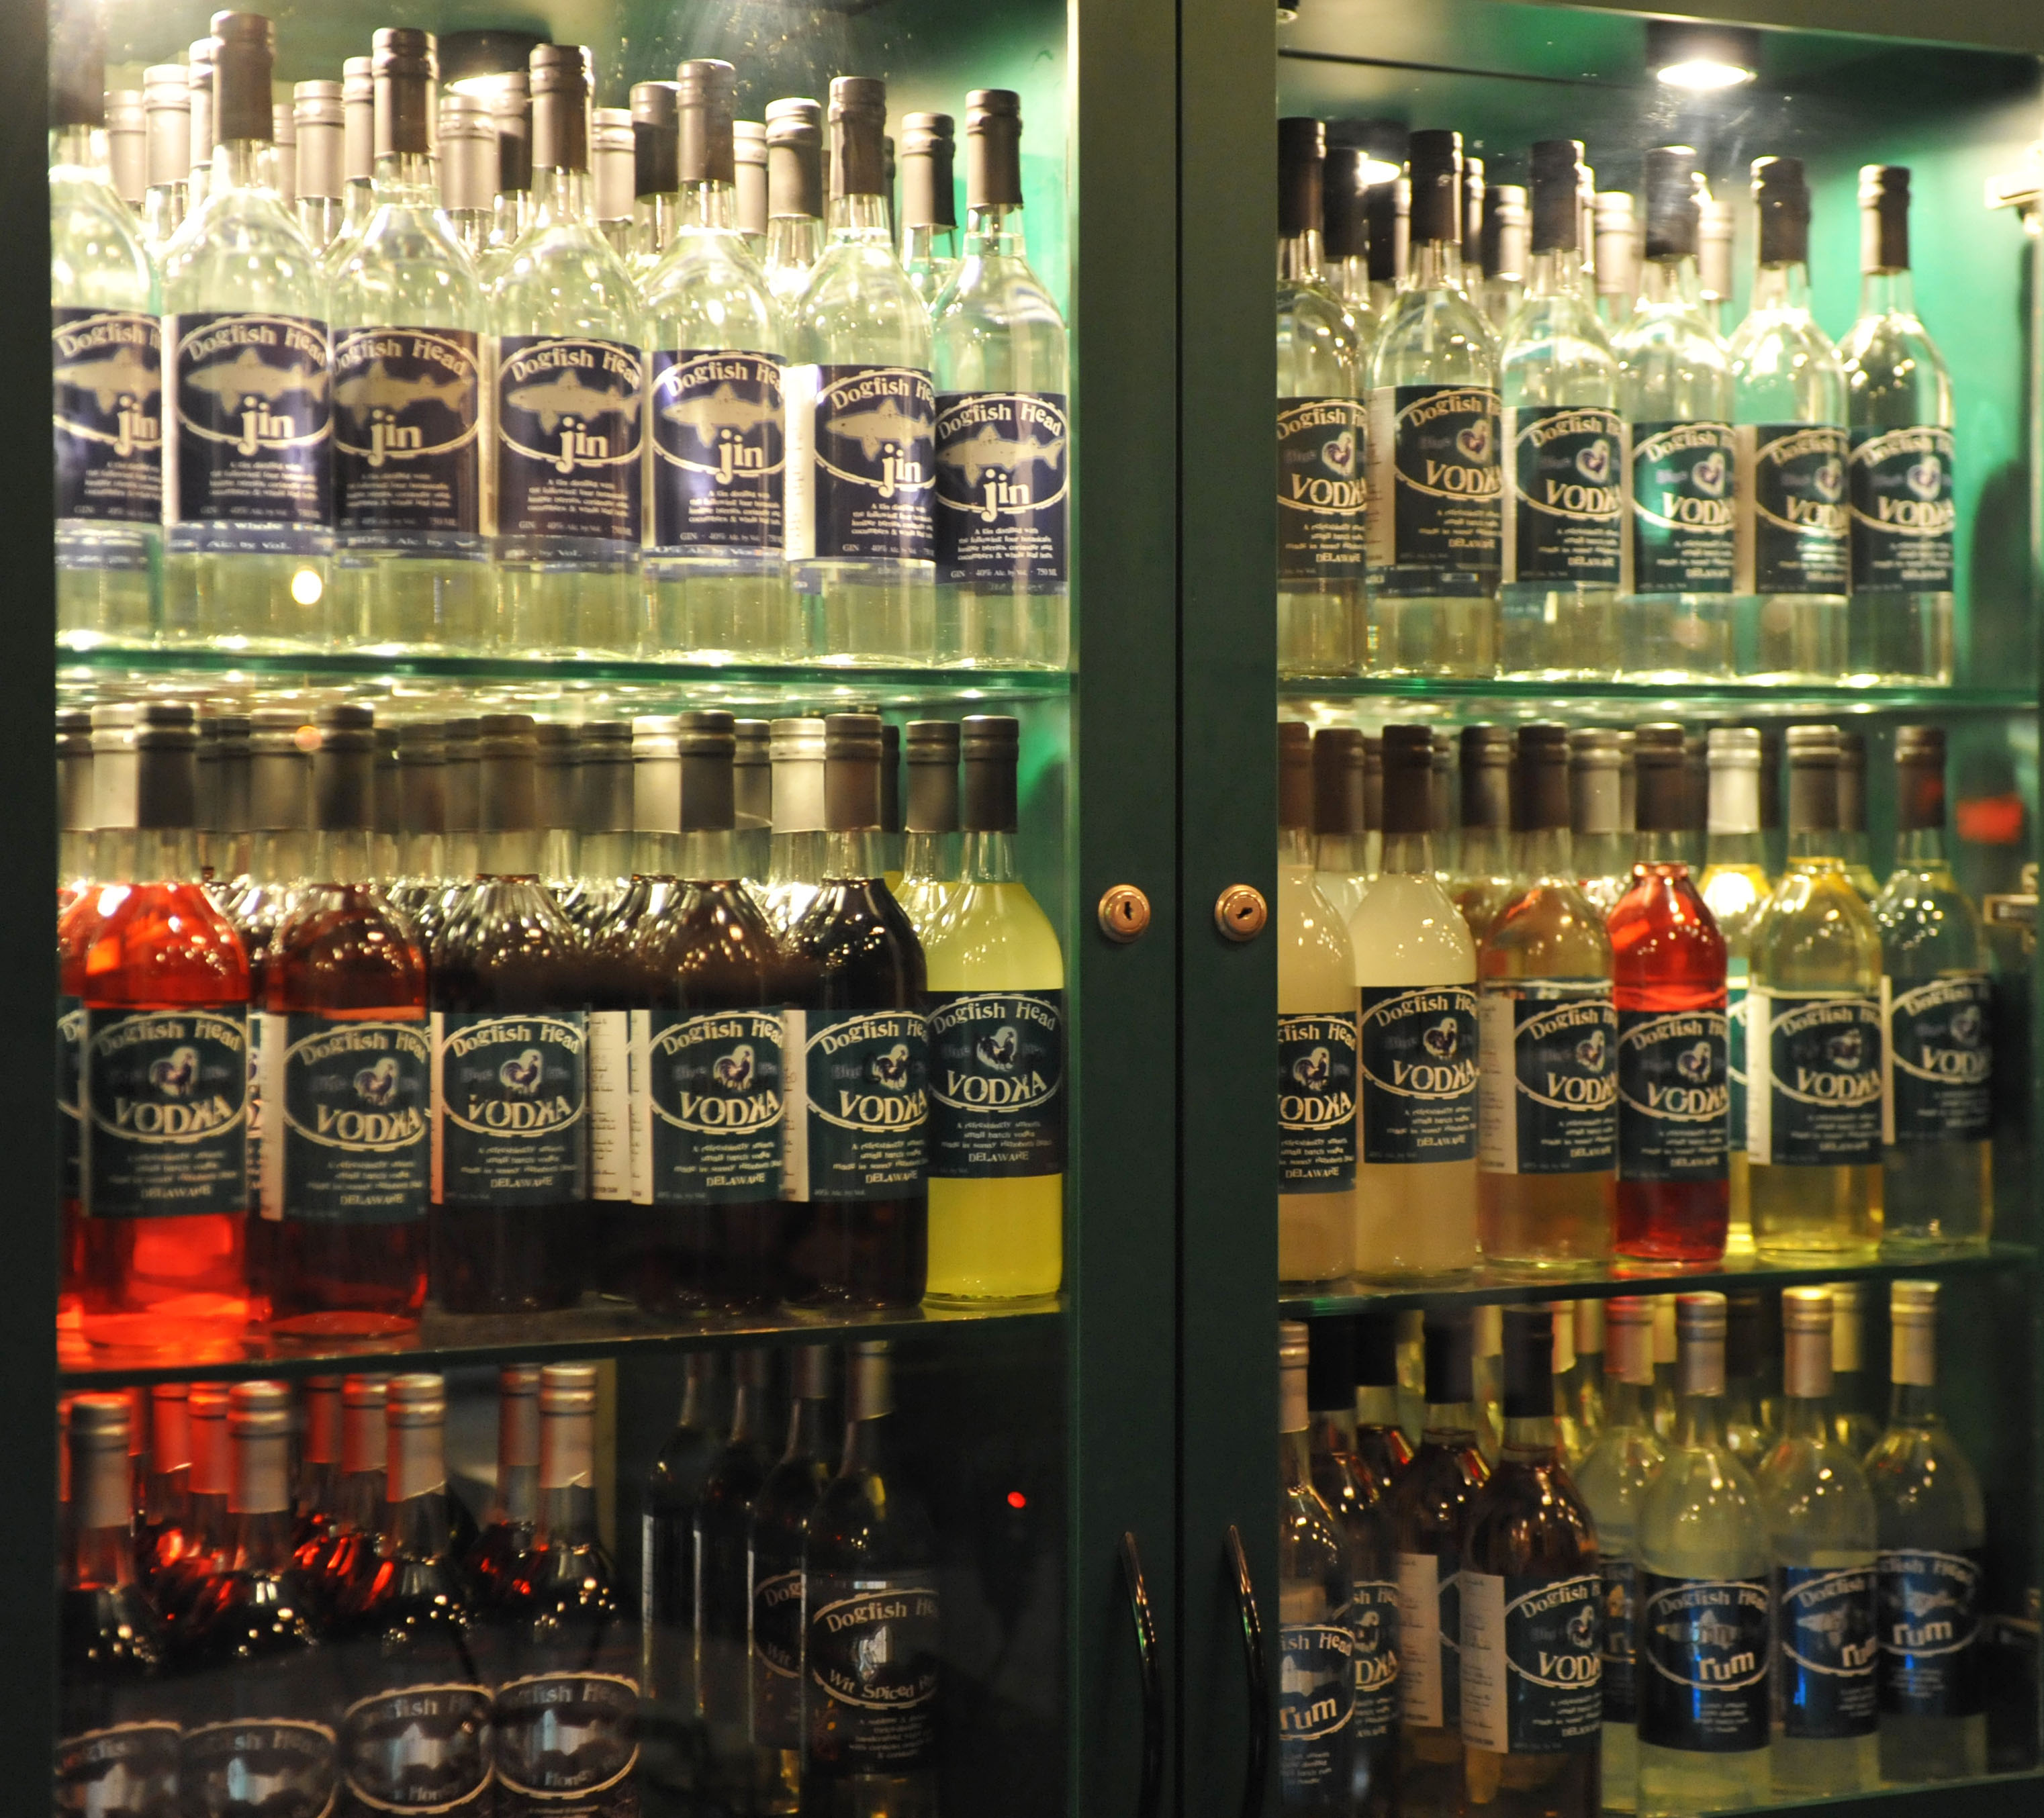 Dogfish has distilled small batches of gin, vodka and rum since 2002.